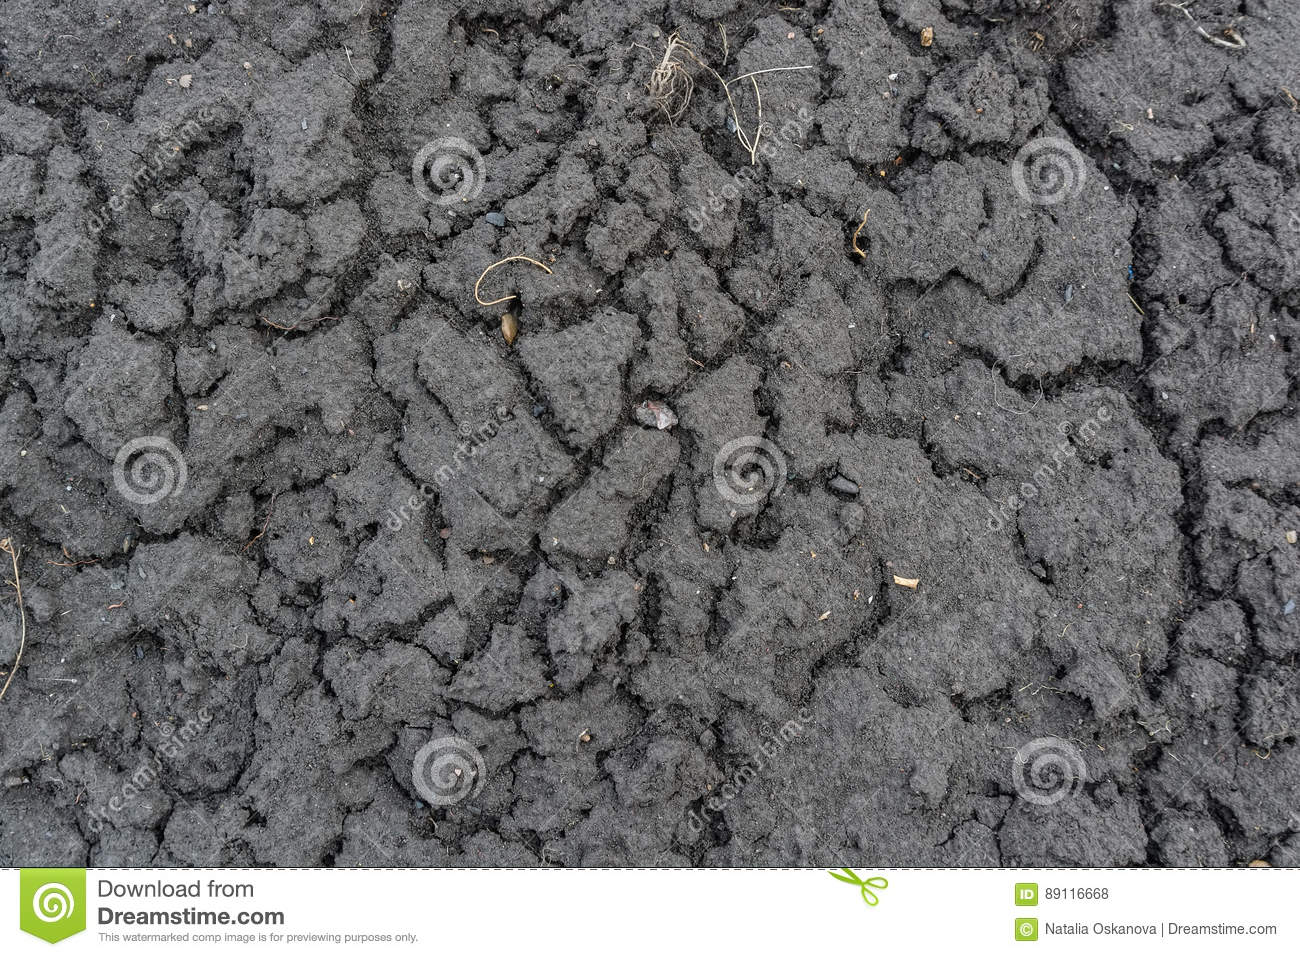 Dry fall ground with cracks